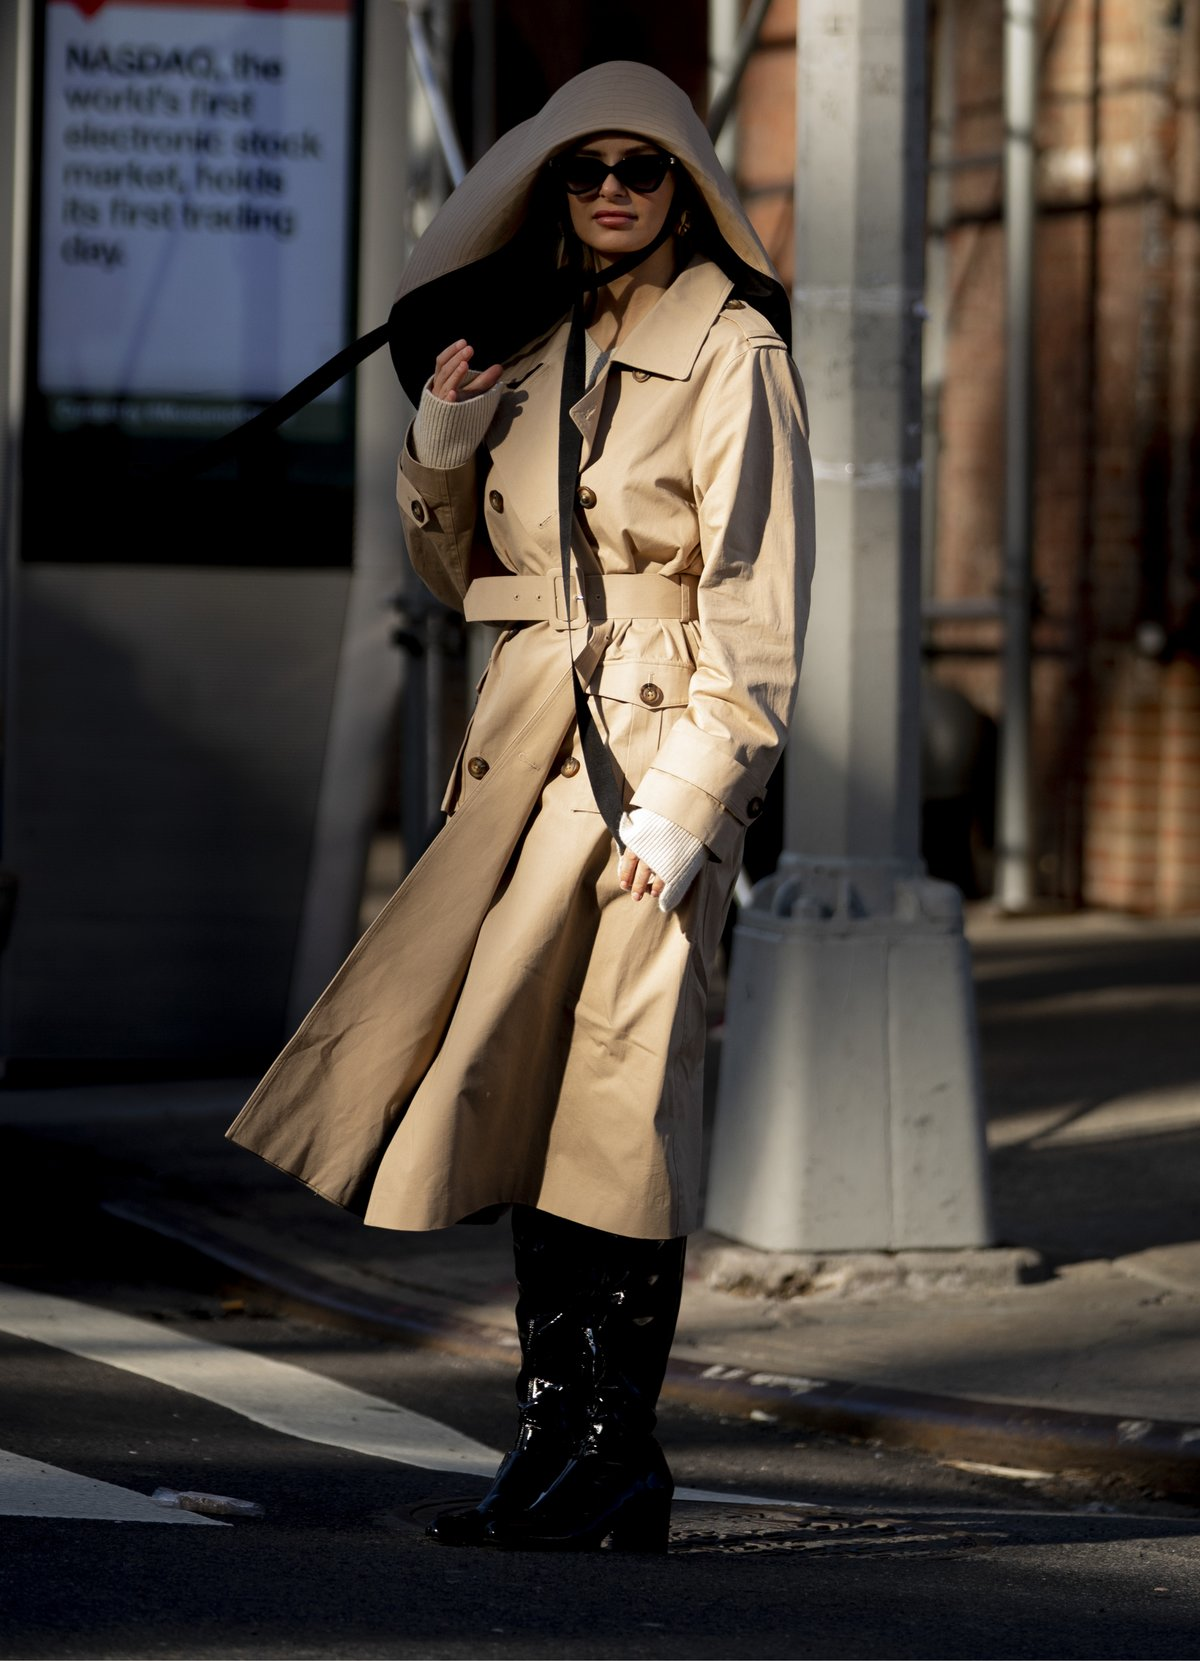 Street-Style-from-New-York_Beige-Belted-Trench-Coat-with-Tall-Patent-Leather-Boots-and-a-Large-Floppy-Hat